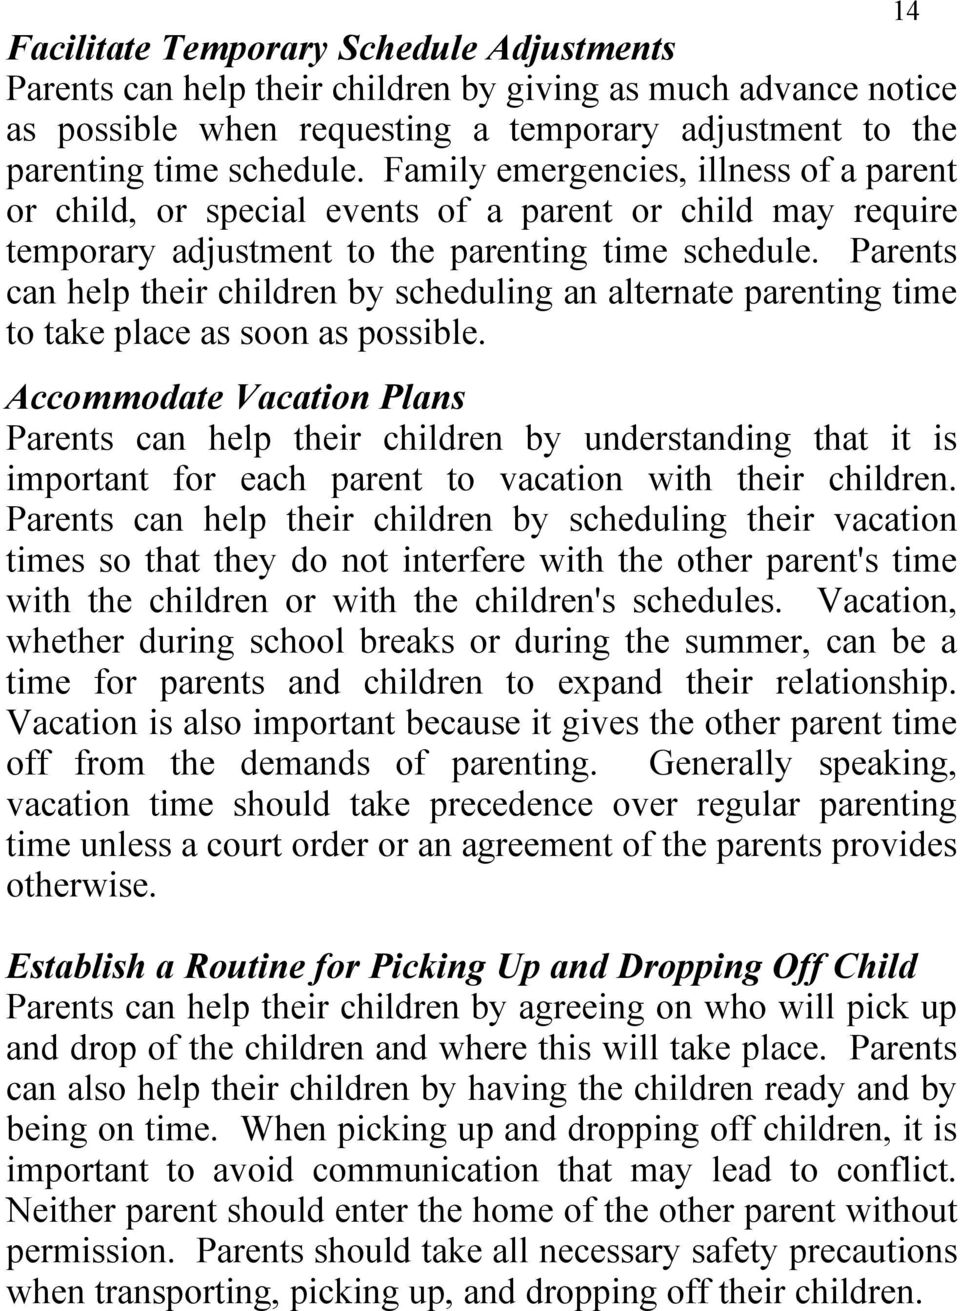 Parents can help their children by scheduling an alternate parenting time to take place as soon as possible.